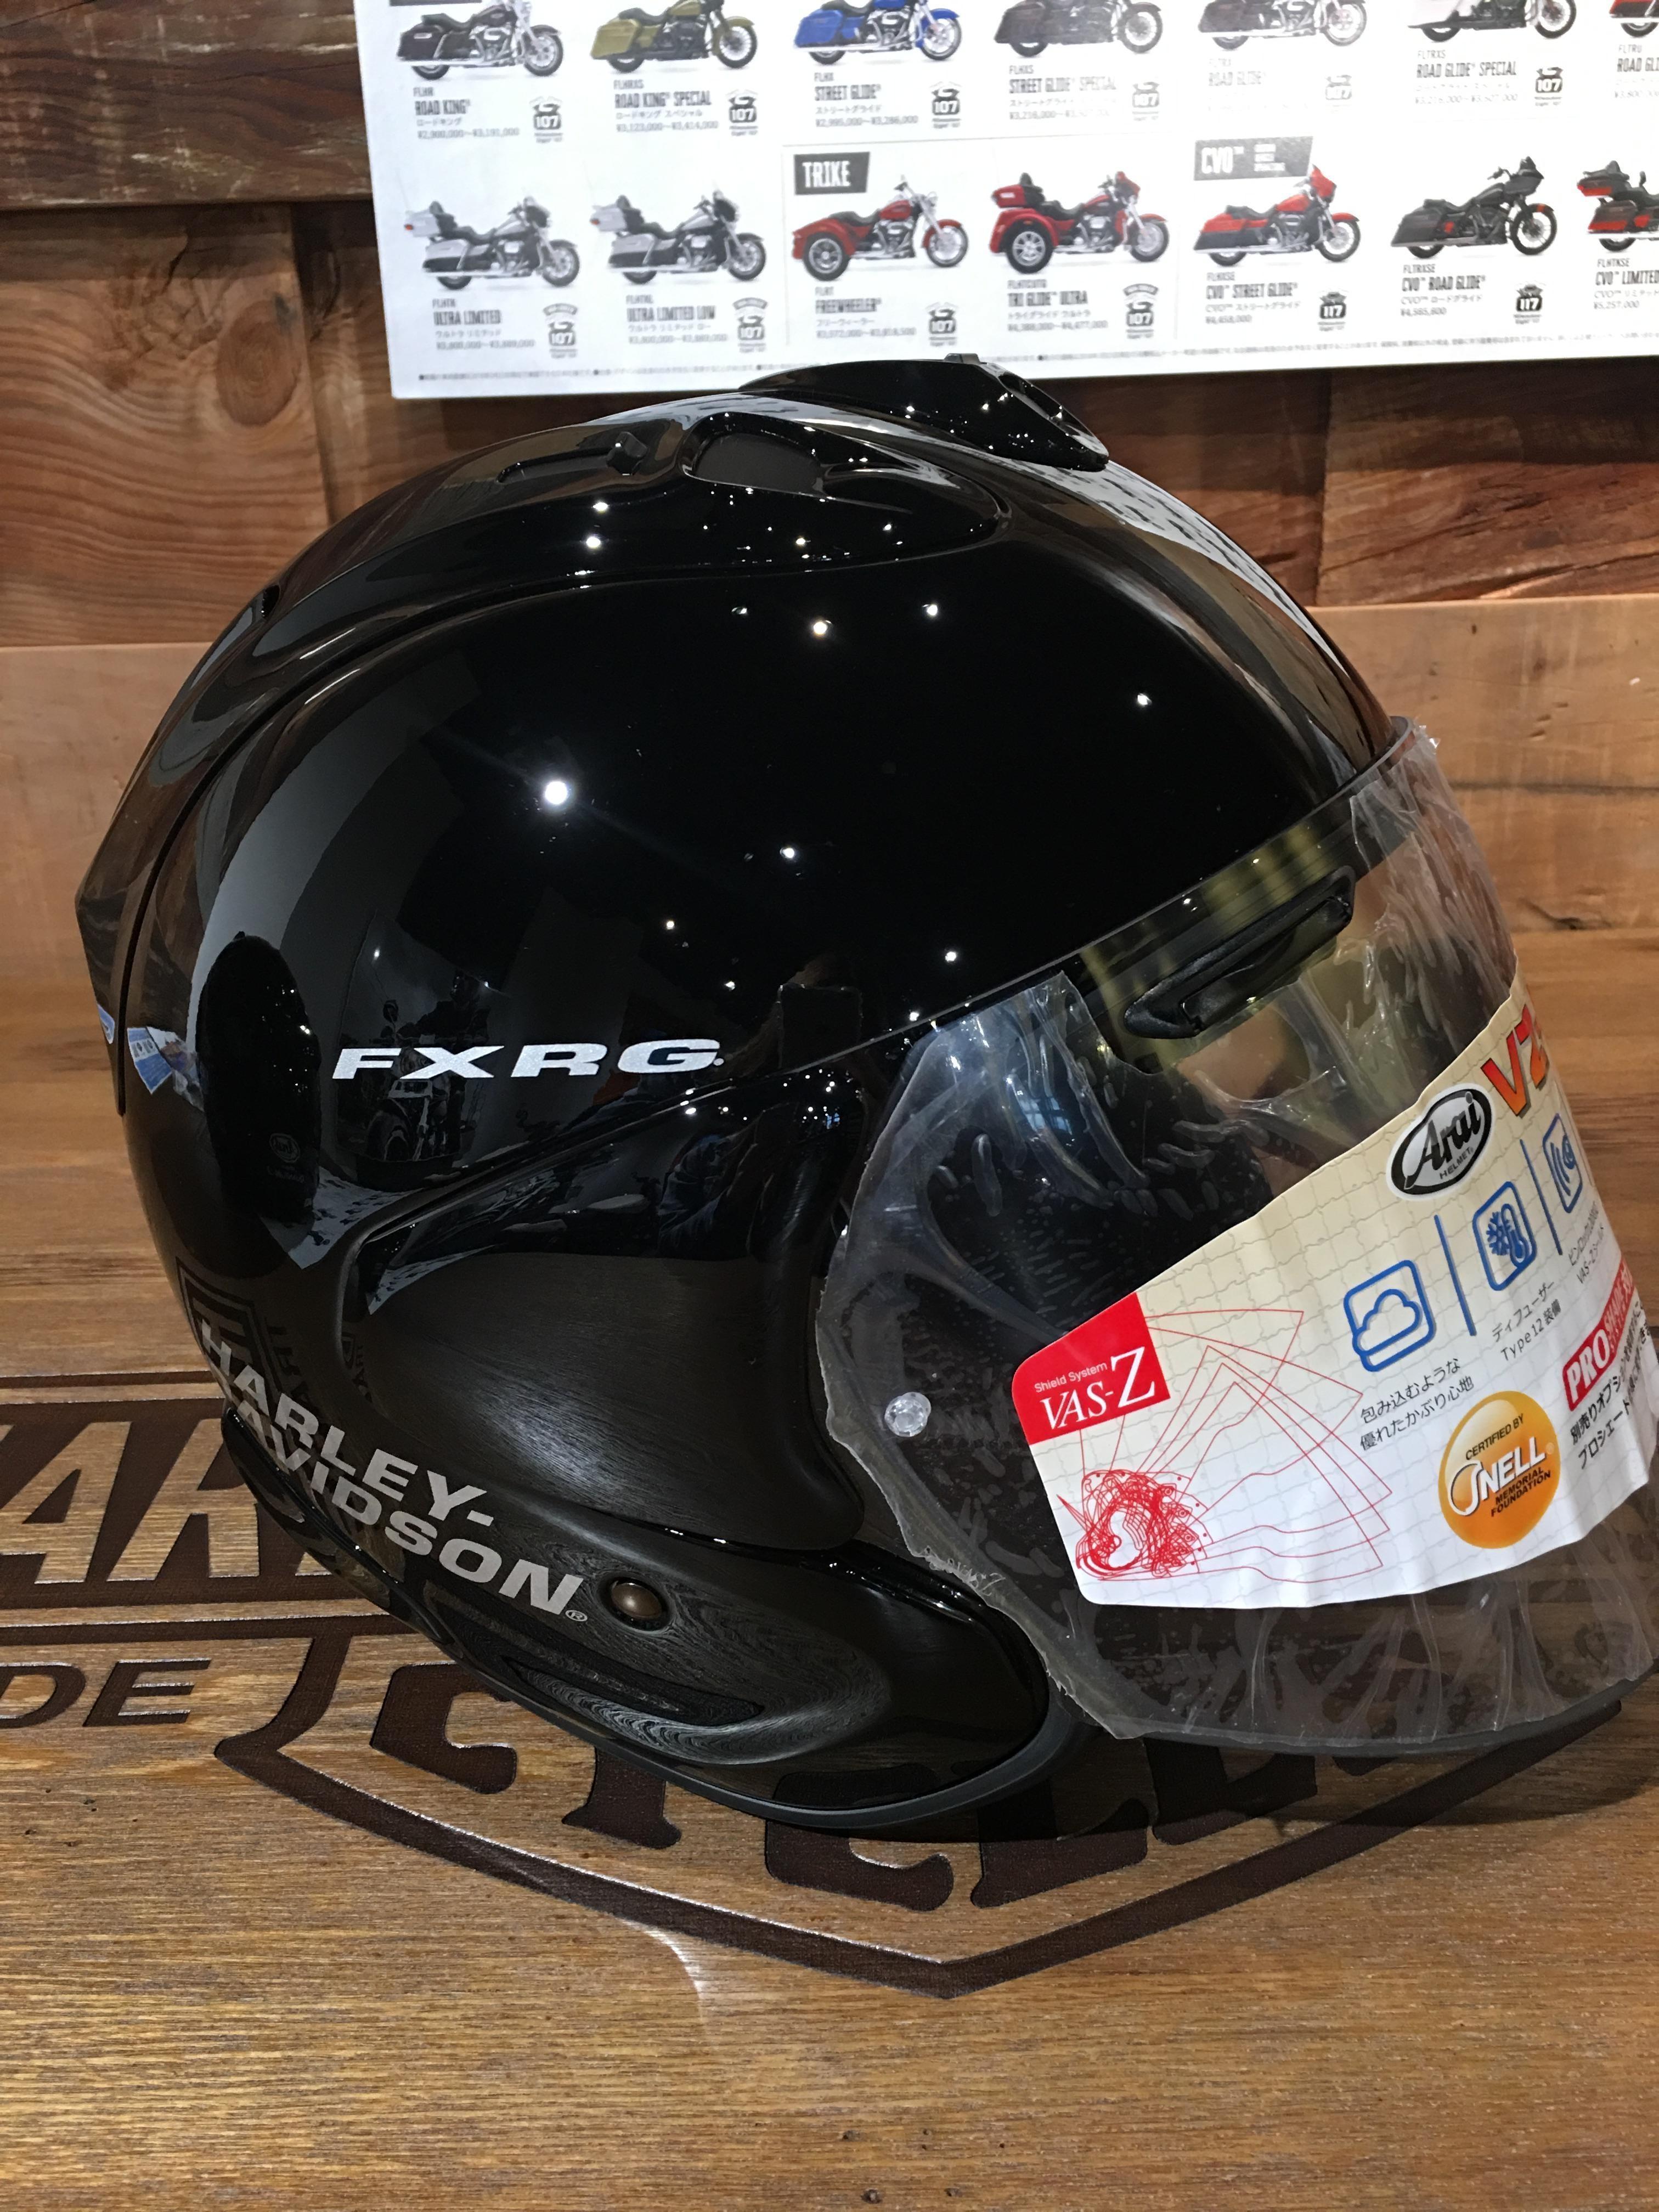 https://www.sogo-bike.com/hd/blog/images/IMG_0683.JPG